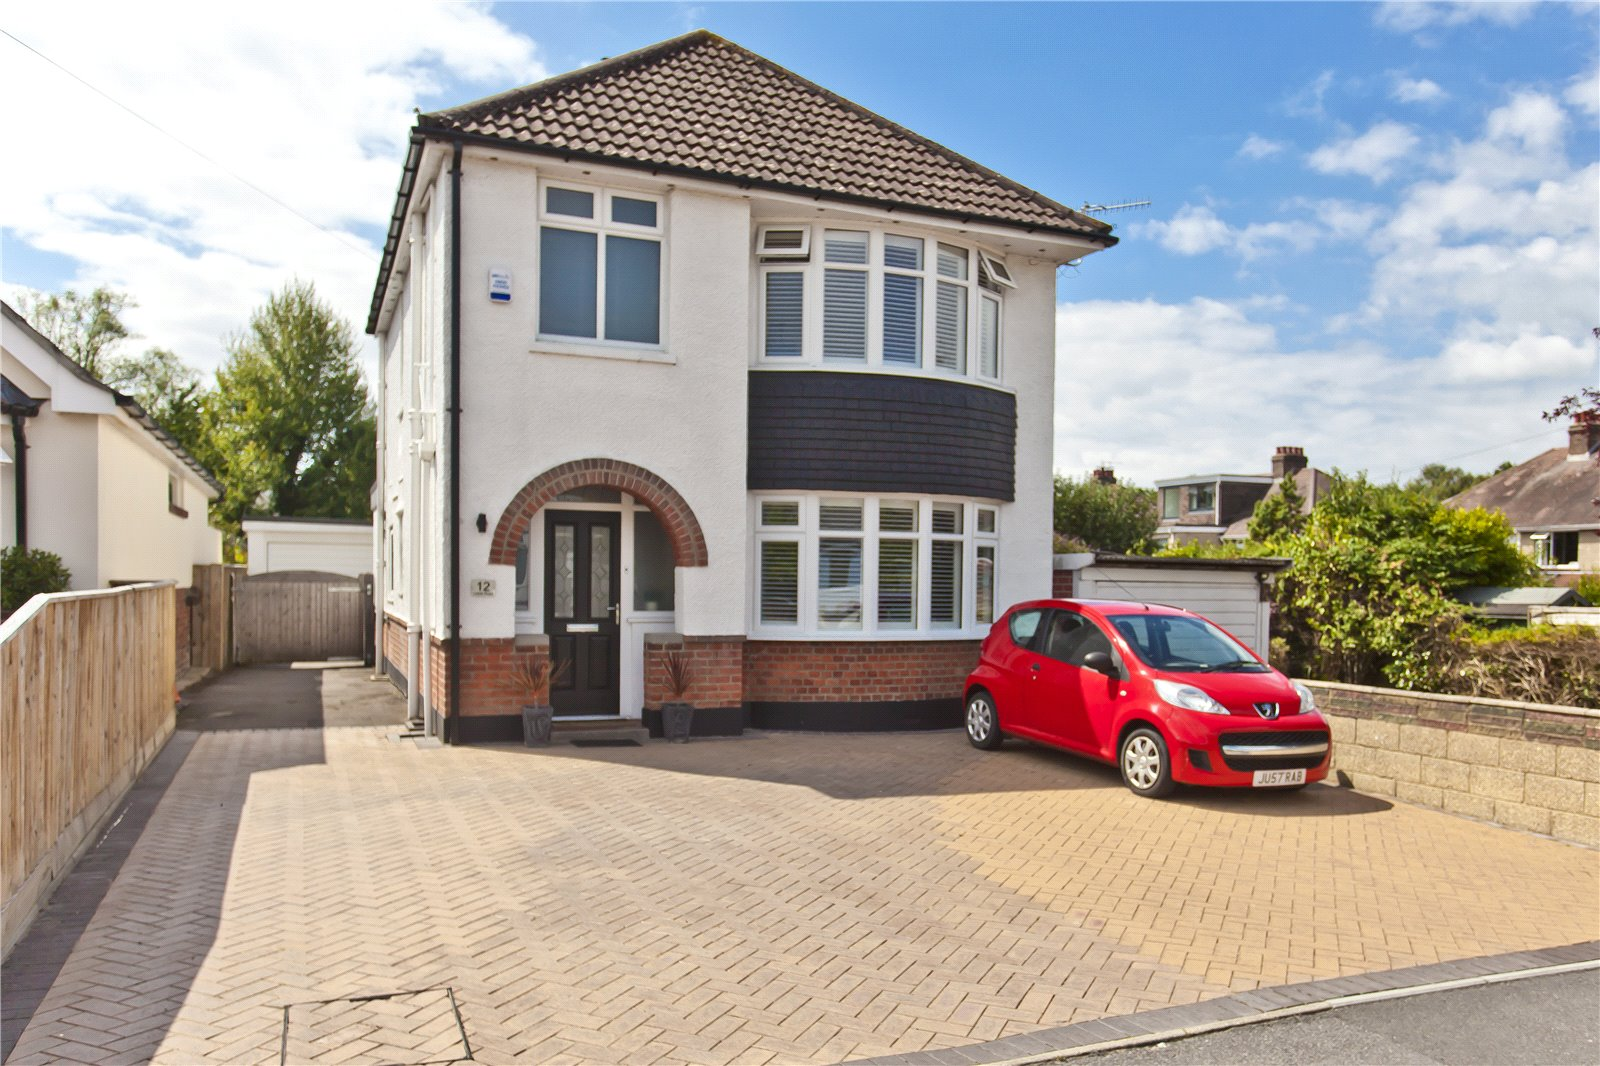 3 bed house for sale in Whitecliff 0